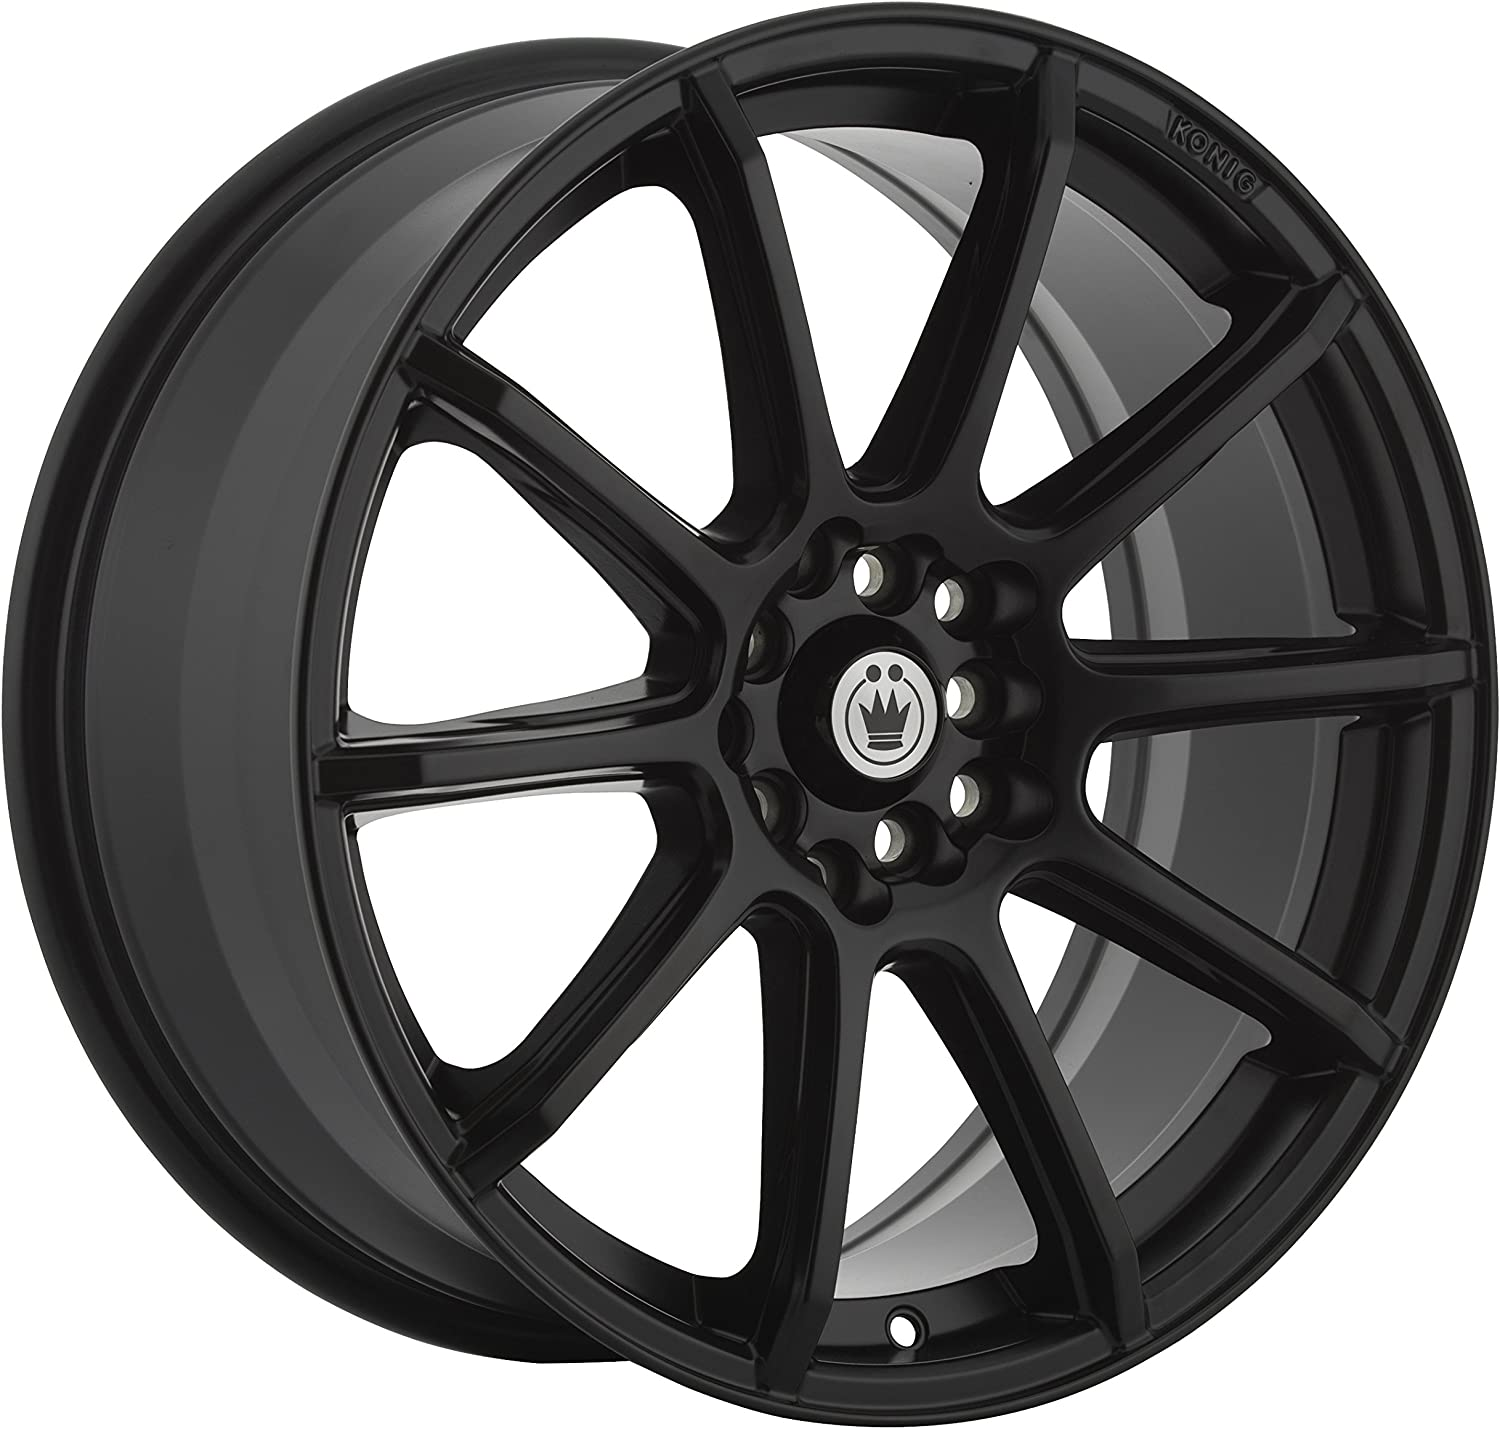 17 x 7. inches //5 x 105 mm, 40 mm Offset Konig CONTROL Matte Black Wheel with Painted Finish